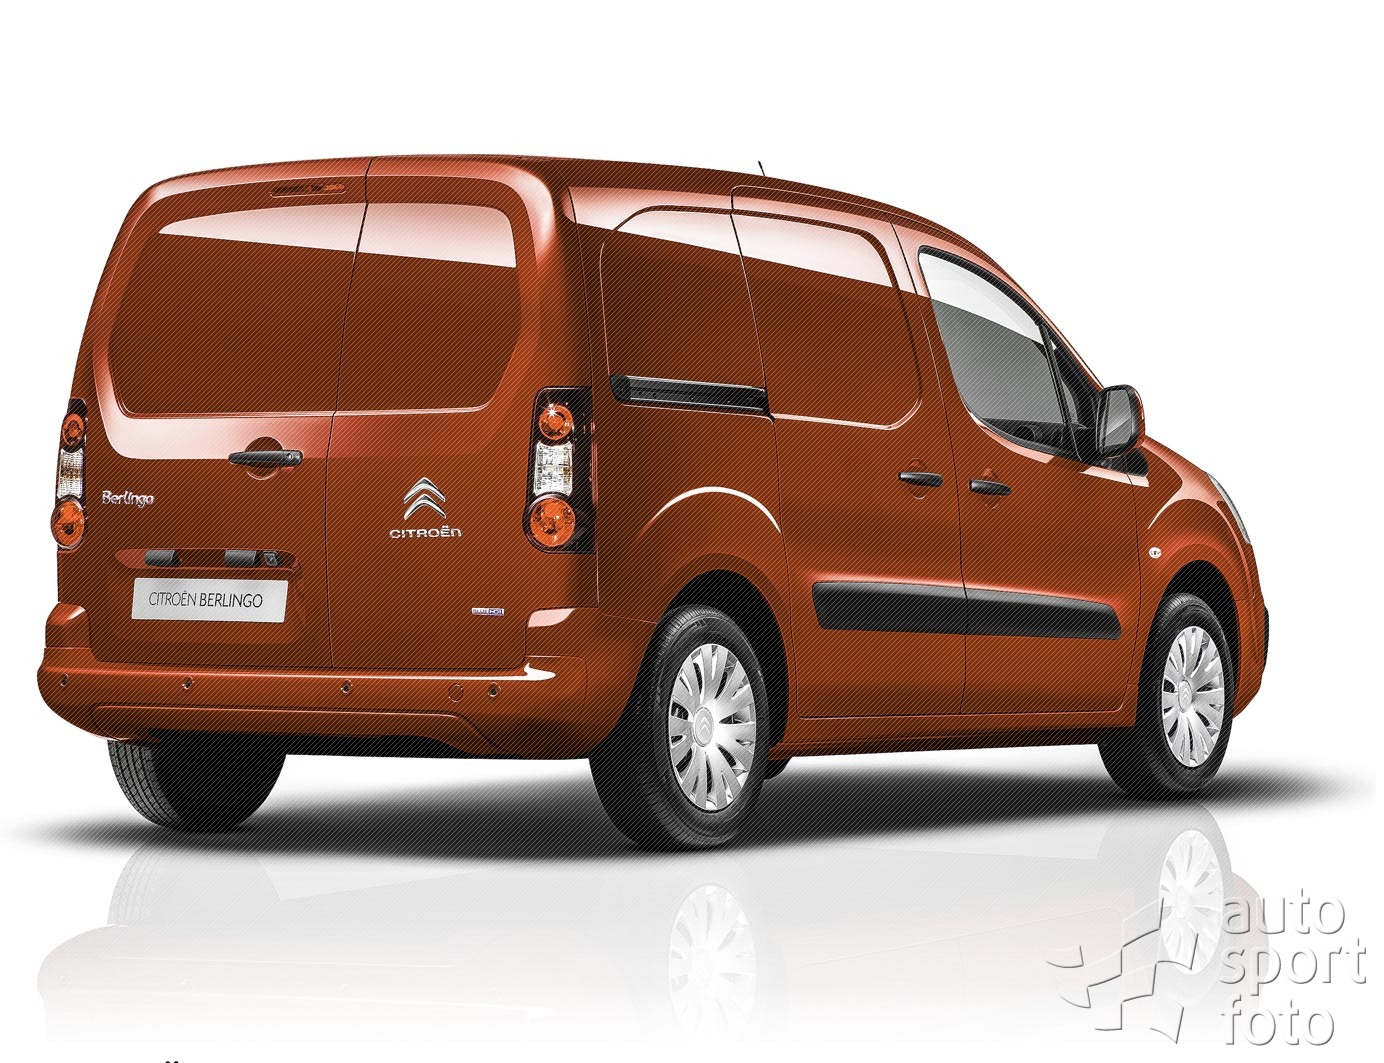 New Citroen Berlingo to launch with Euro 6 technology